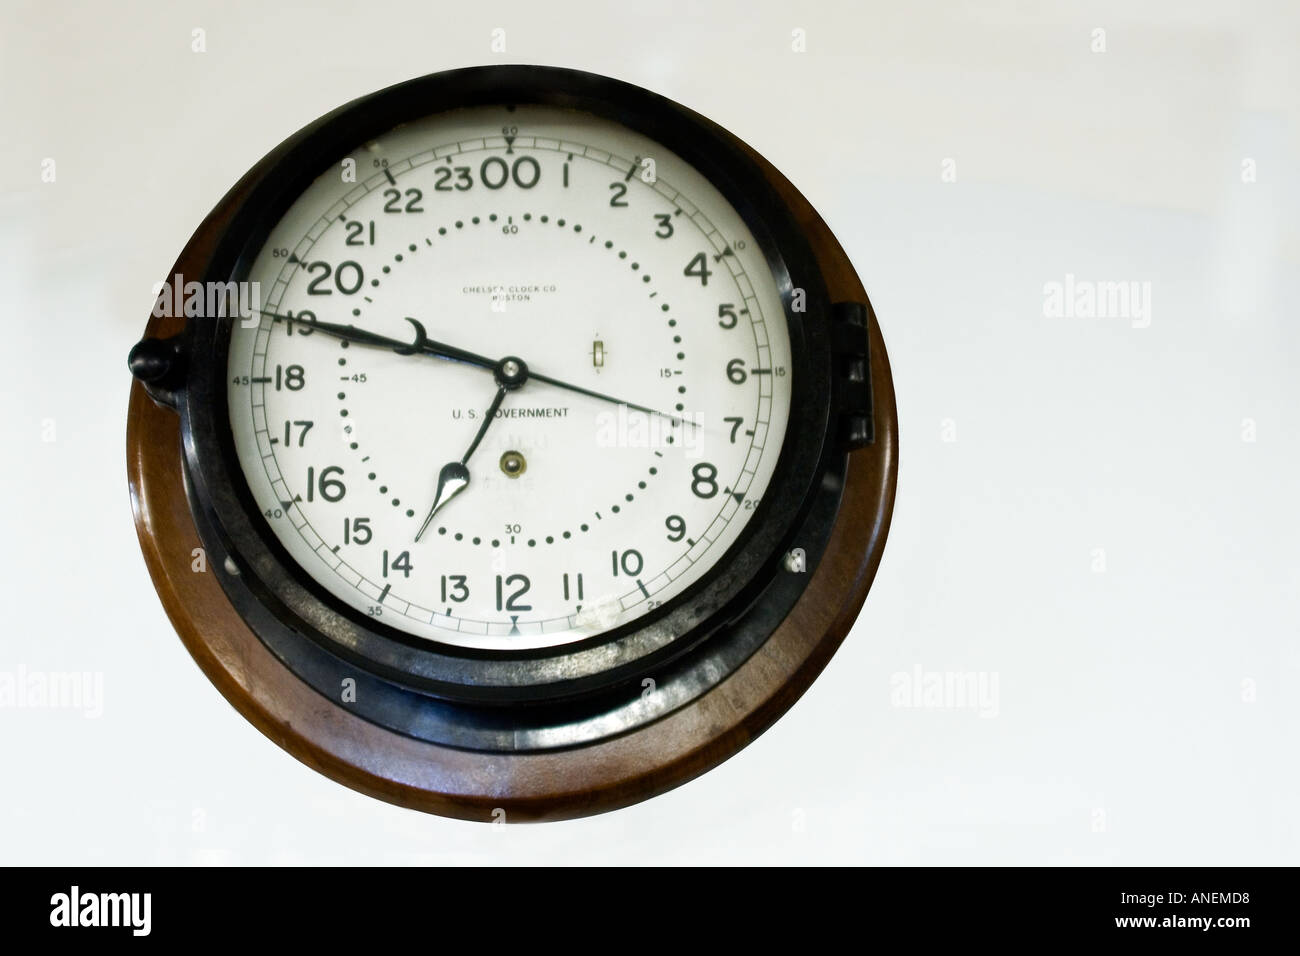 Military Time Clock >> Military Time Clock Stock Photo 5061847 Alamy